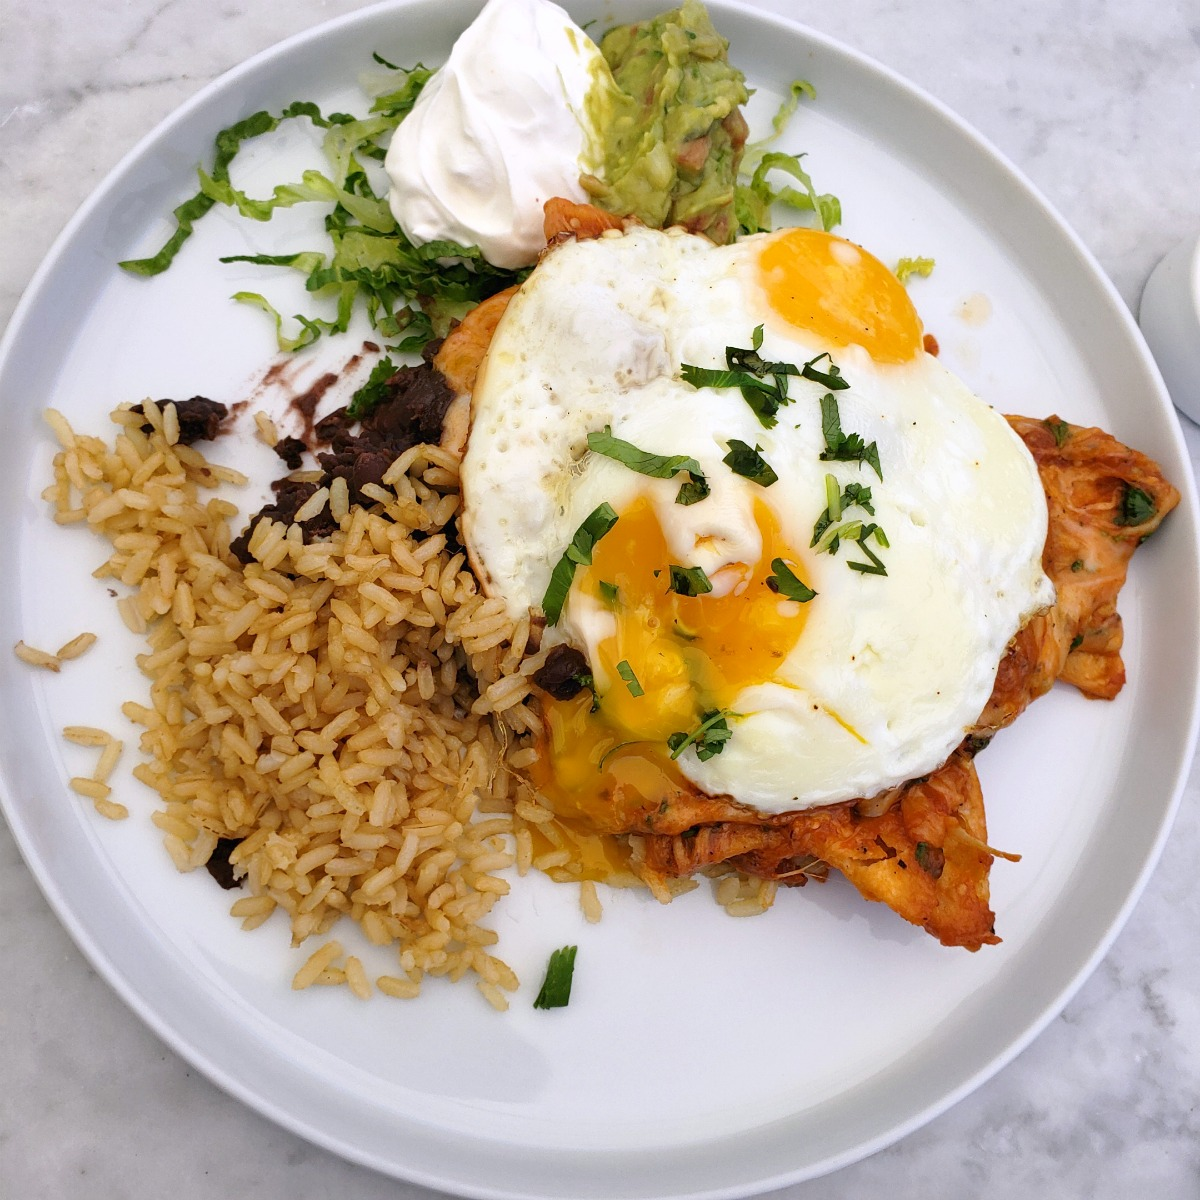 Chilaquiles with fried eggs on top, rice and guacamole alongside on a white plate at The Sparrow Cafe in Malibu